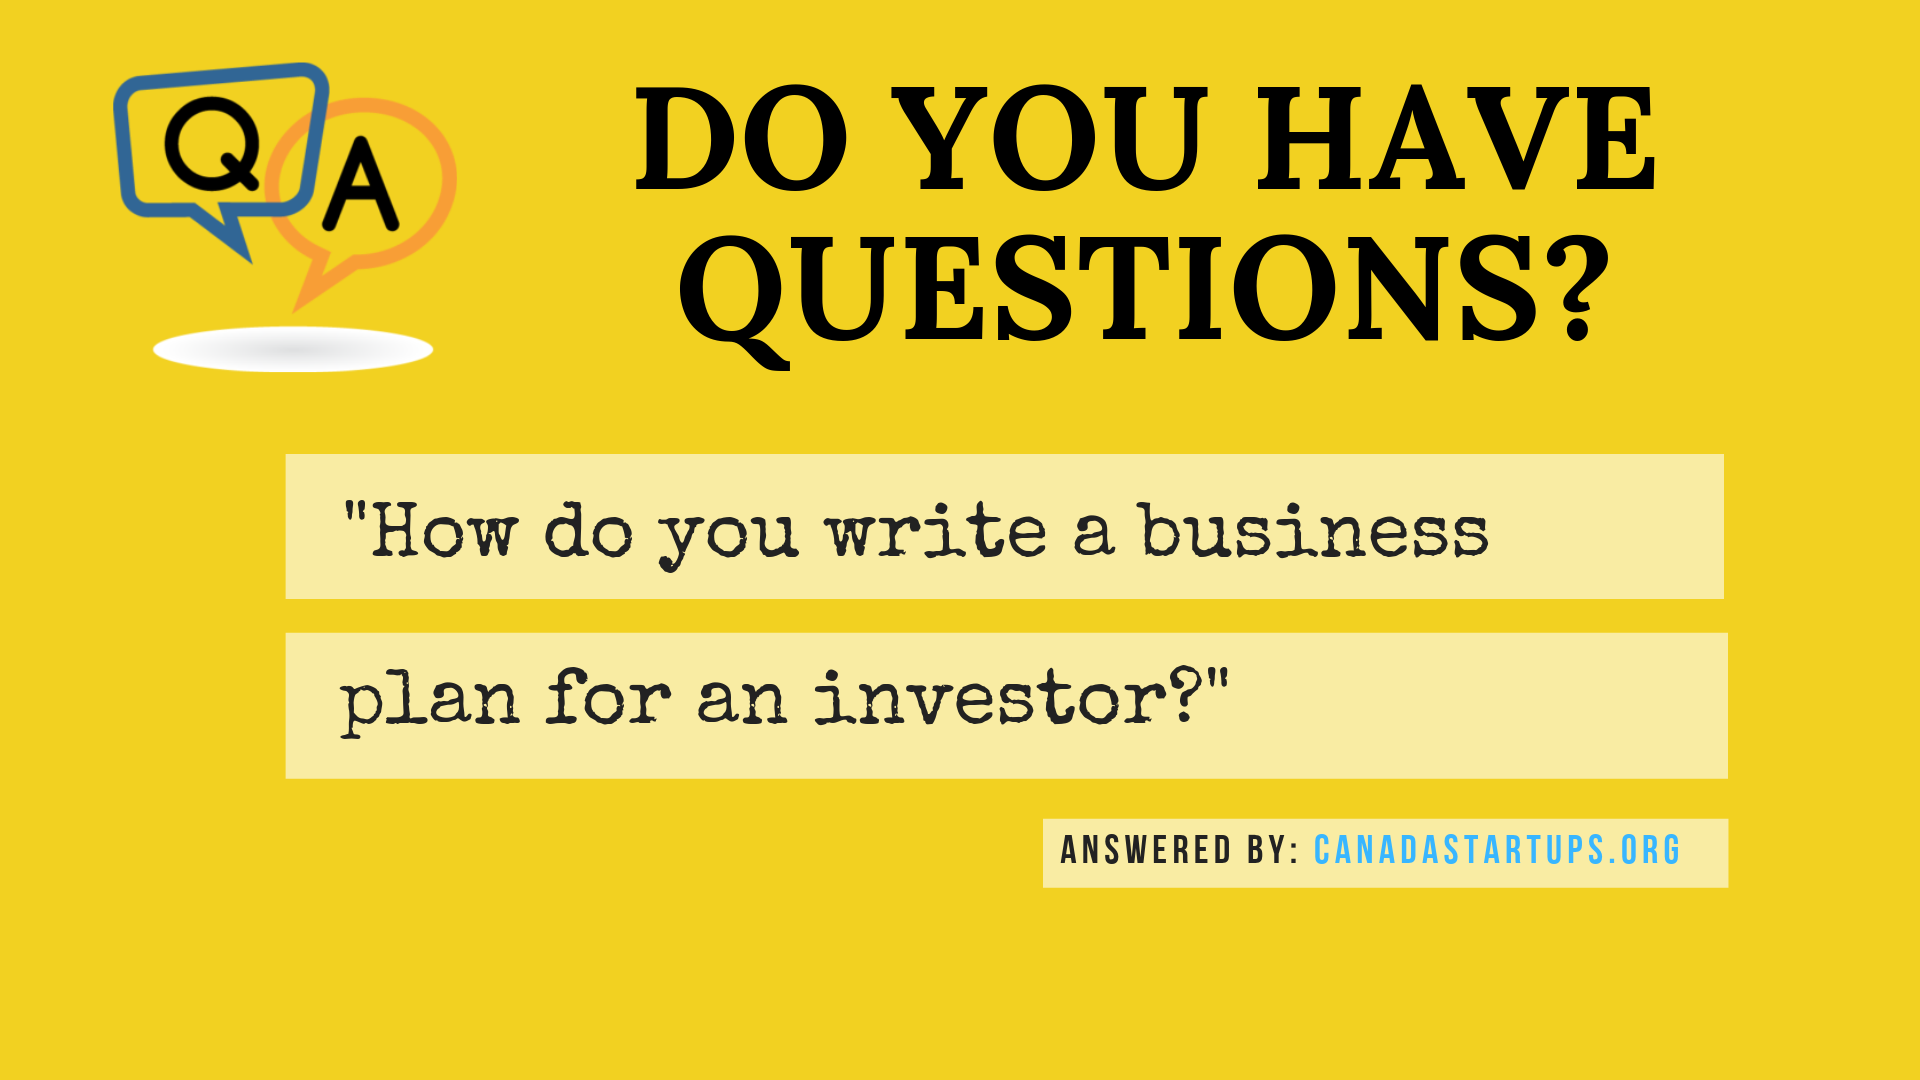 write a business plan for an investor